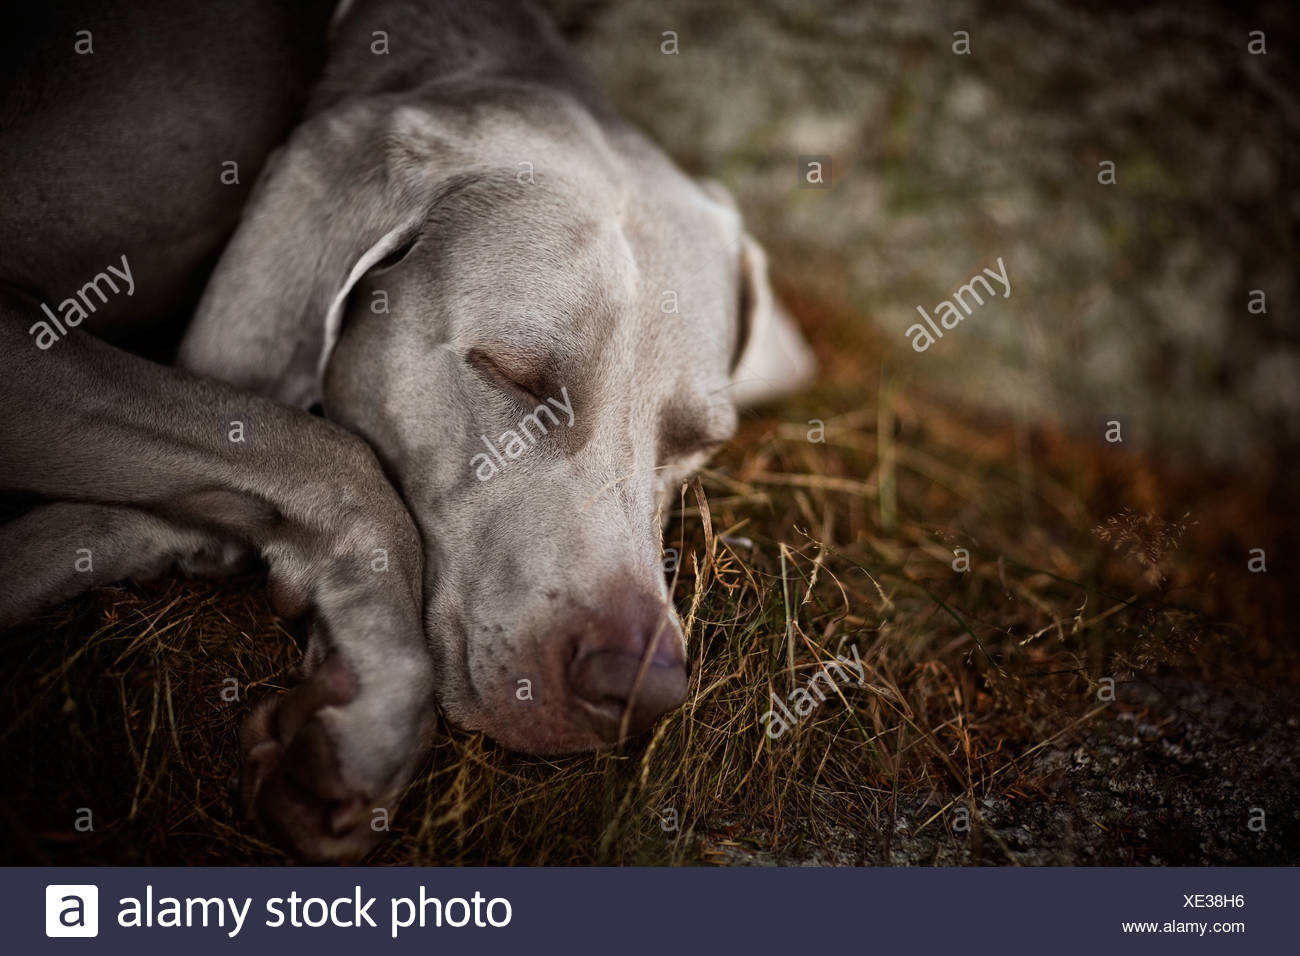 A dog dreaming, Sweden. - Stock Image